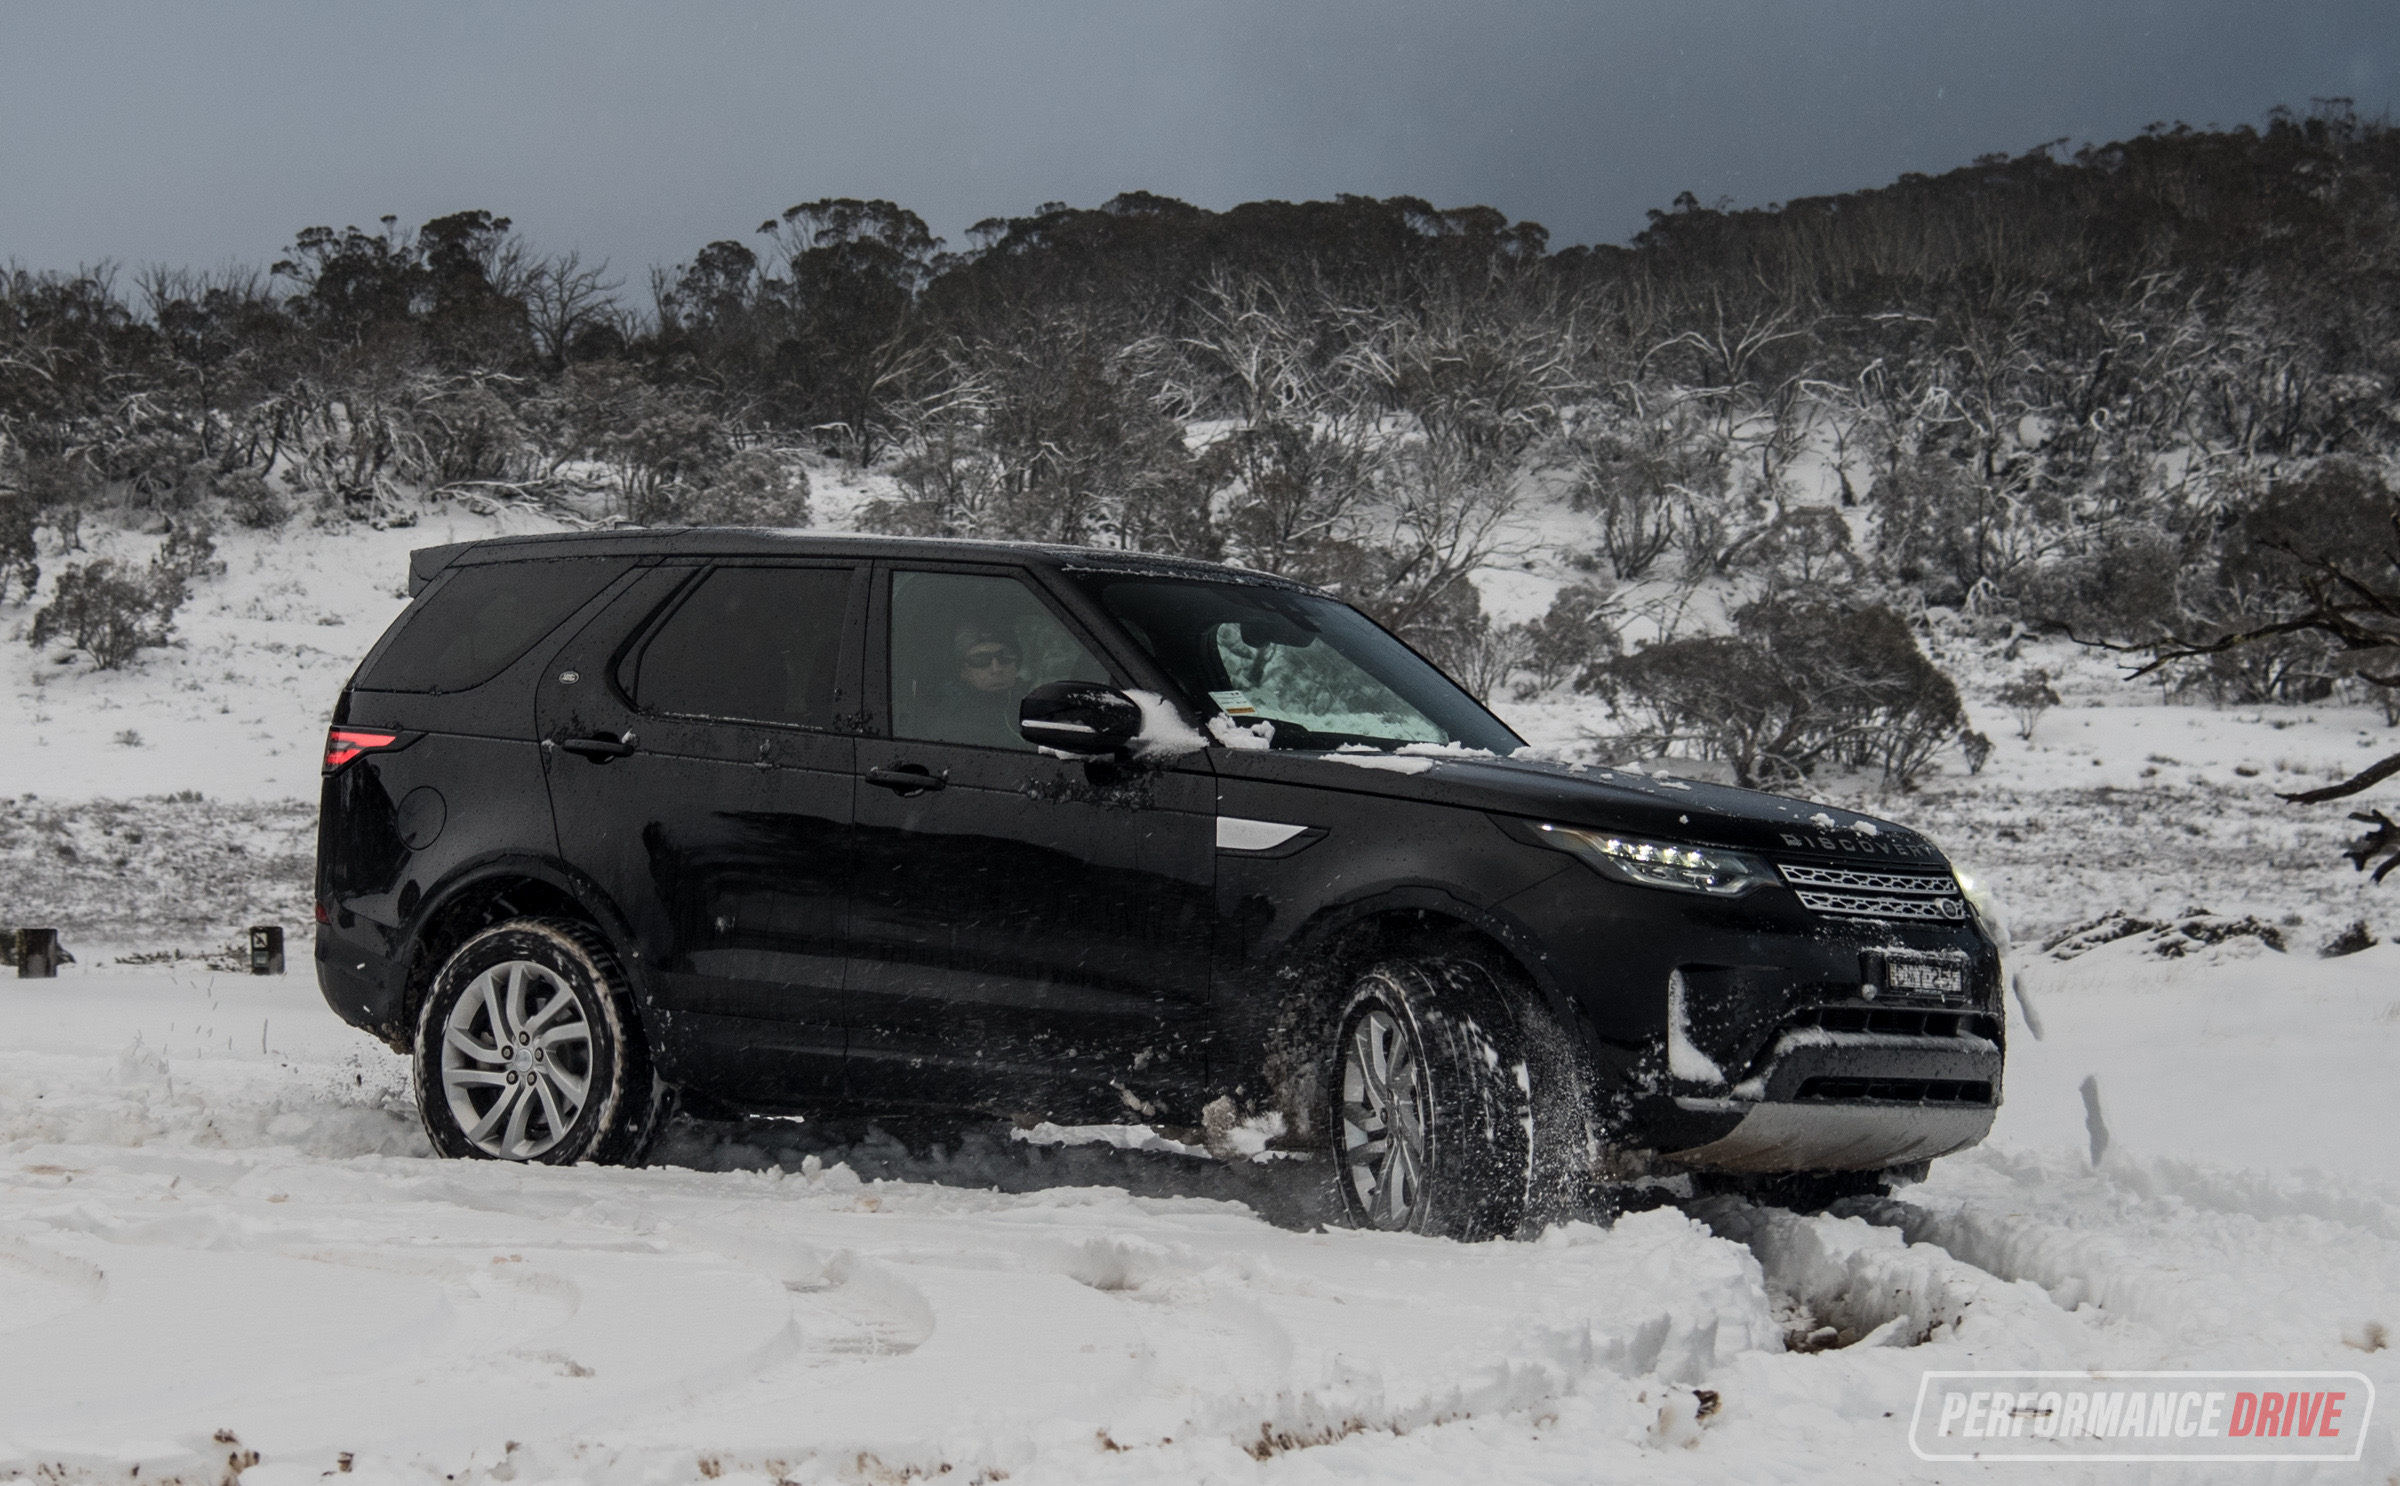 http://performancedrive.com.au/wp-content/uploads/2017/09/2017-Land-Rover-Discovery-HSE-Sd4-snow-mode.jpg